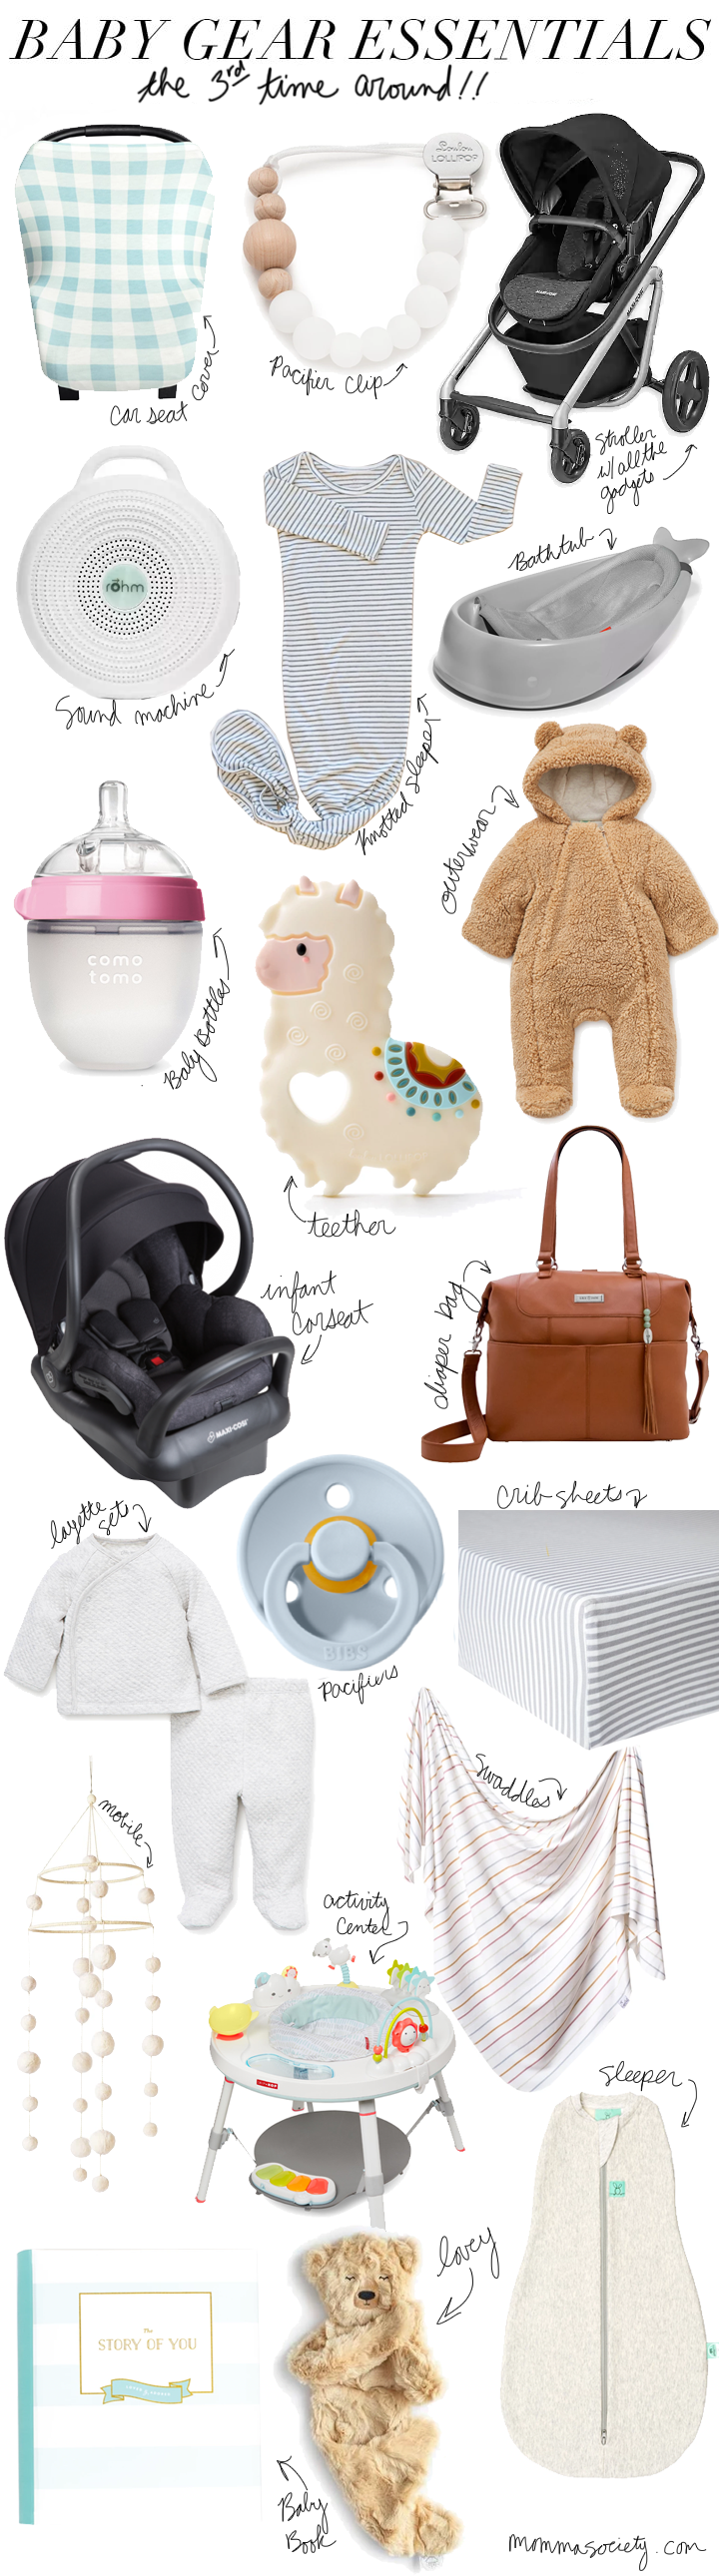 baby gear essentials #3.png